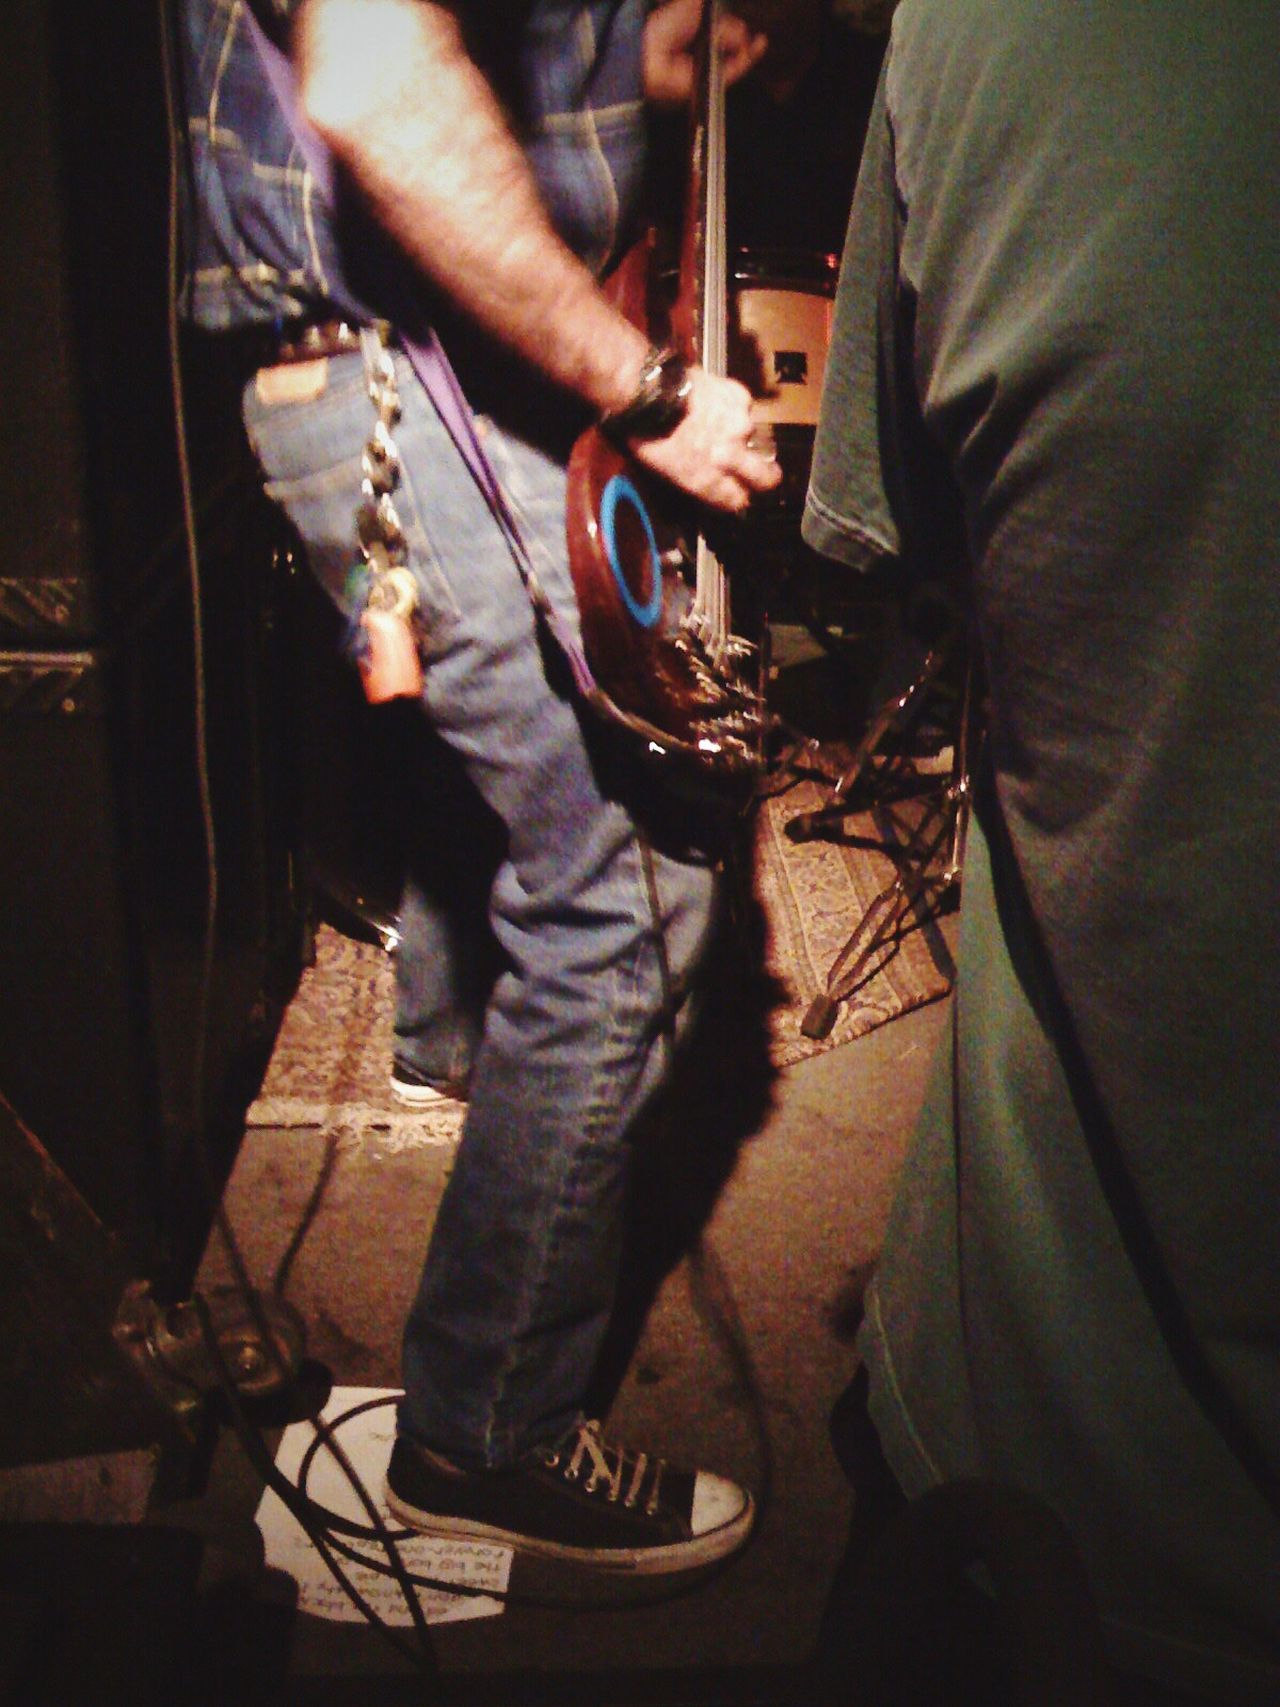 Badass Bassists Mike Watt Music Photography  Musicians Bass Player Live Music Awesome Music Night Out Belligerent Music Brings Us Together